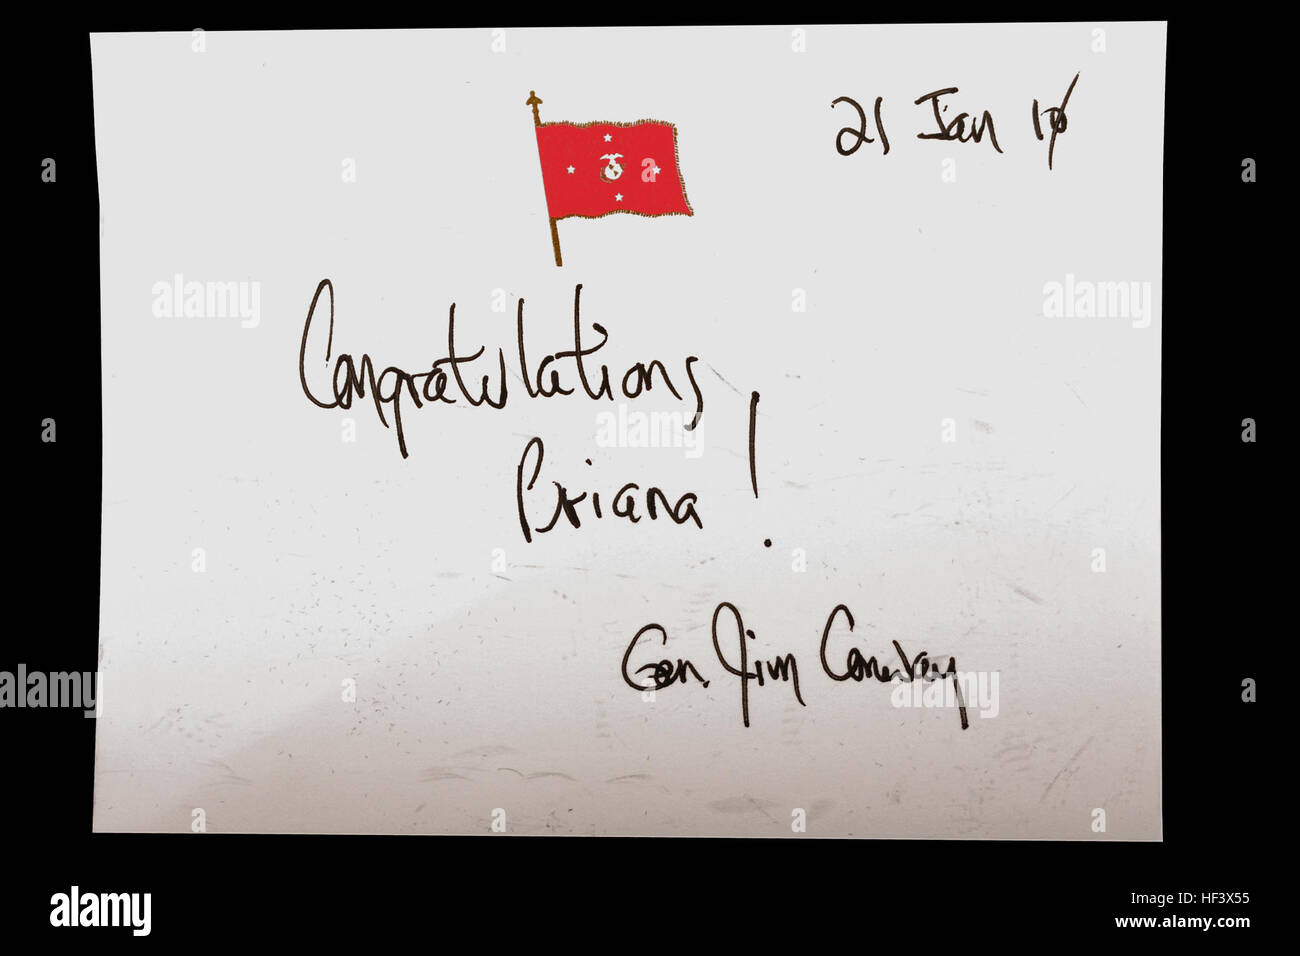 A signed message from Gen. James T. Conway, commandant of the Marine Corps, was included in Briana Menendez' Honorary Stock Photo